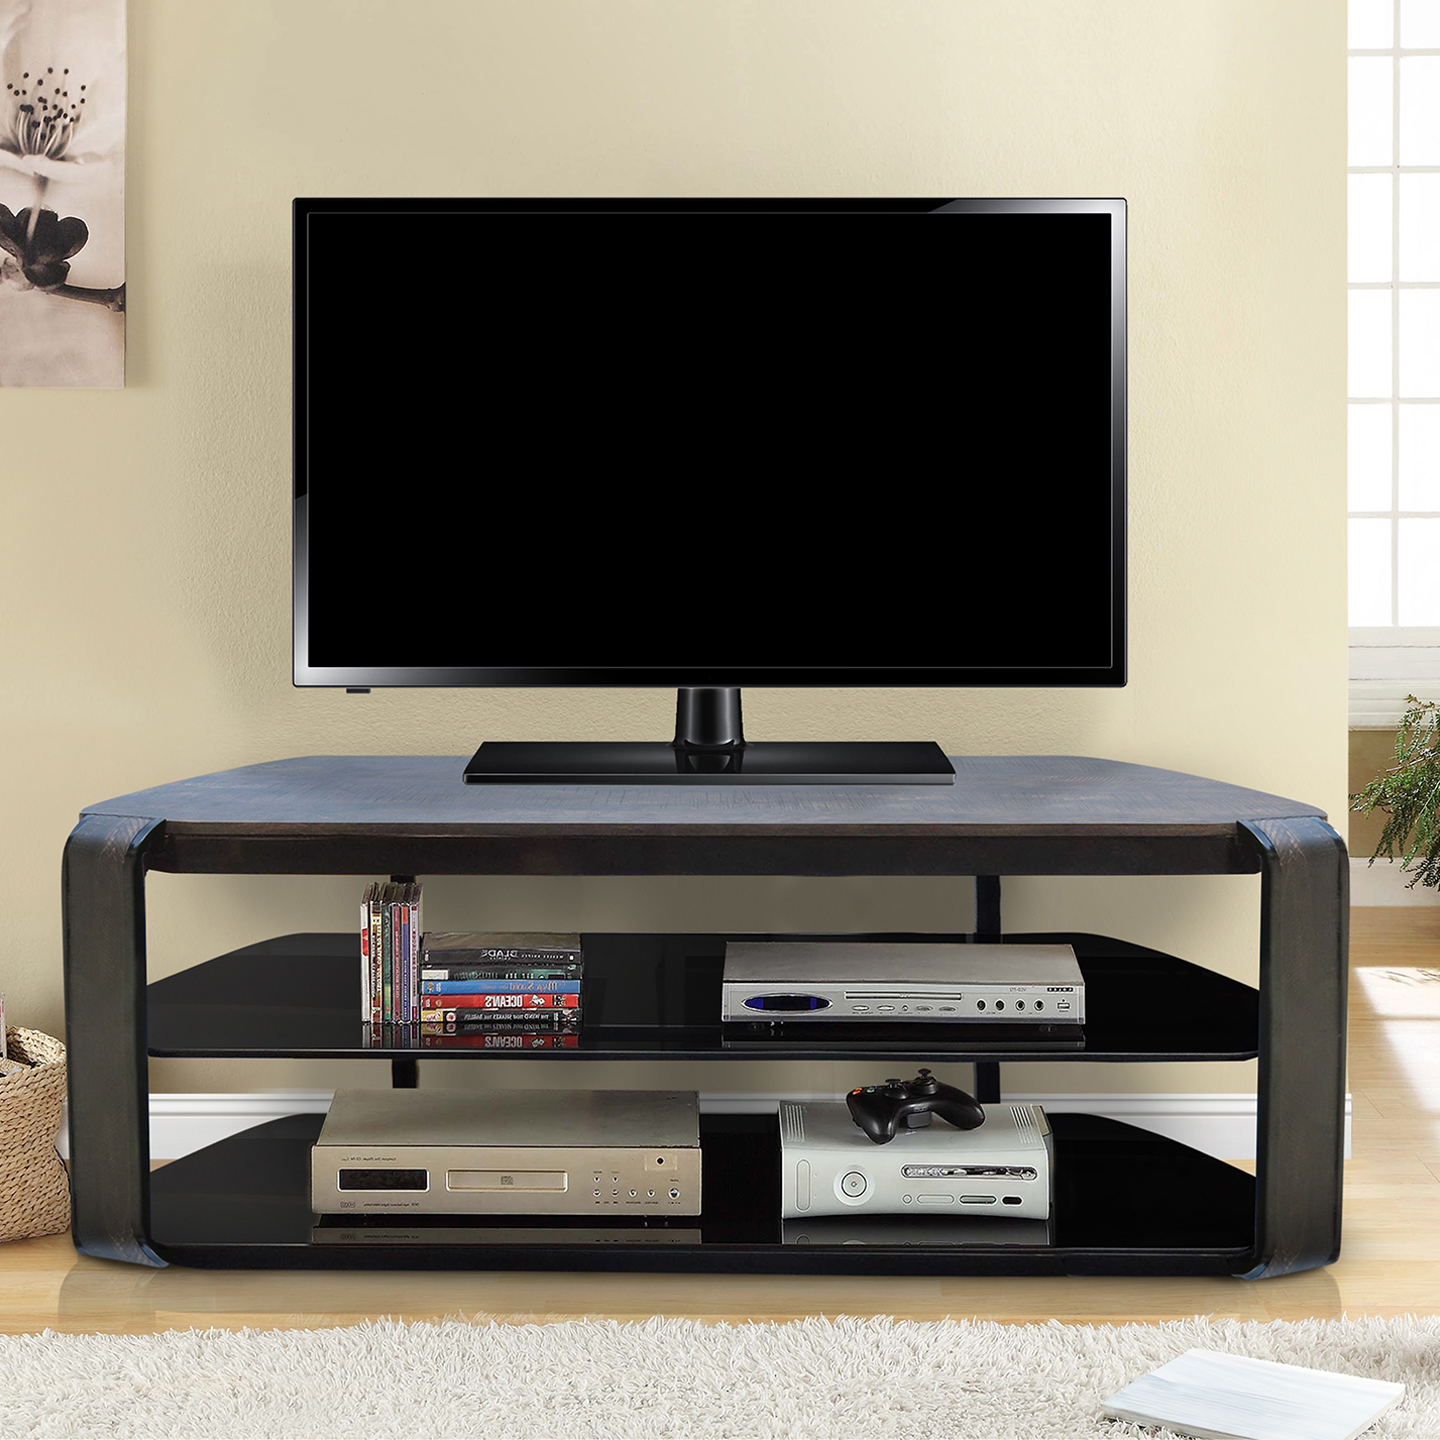 Olly Tv Stand Foldable – Vintage Oak | Living Essentials Corp (View 15 of 20)